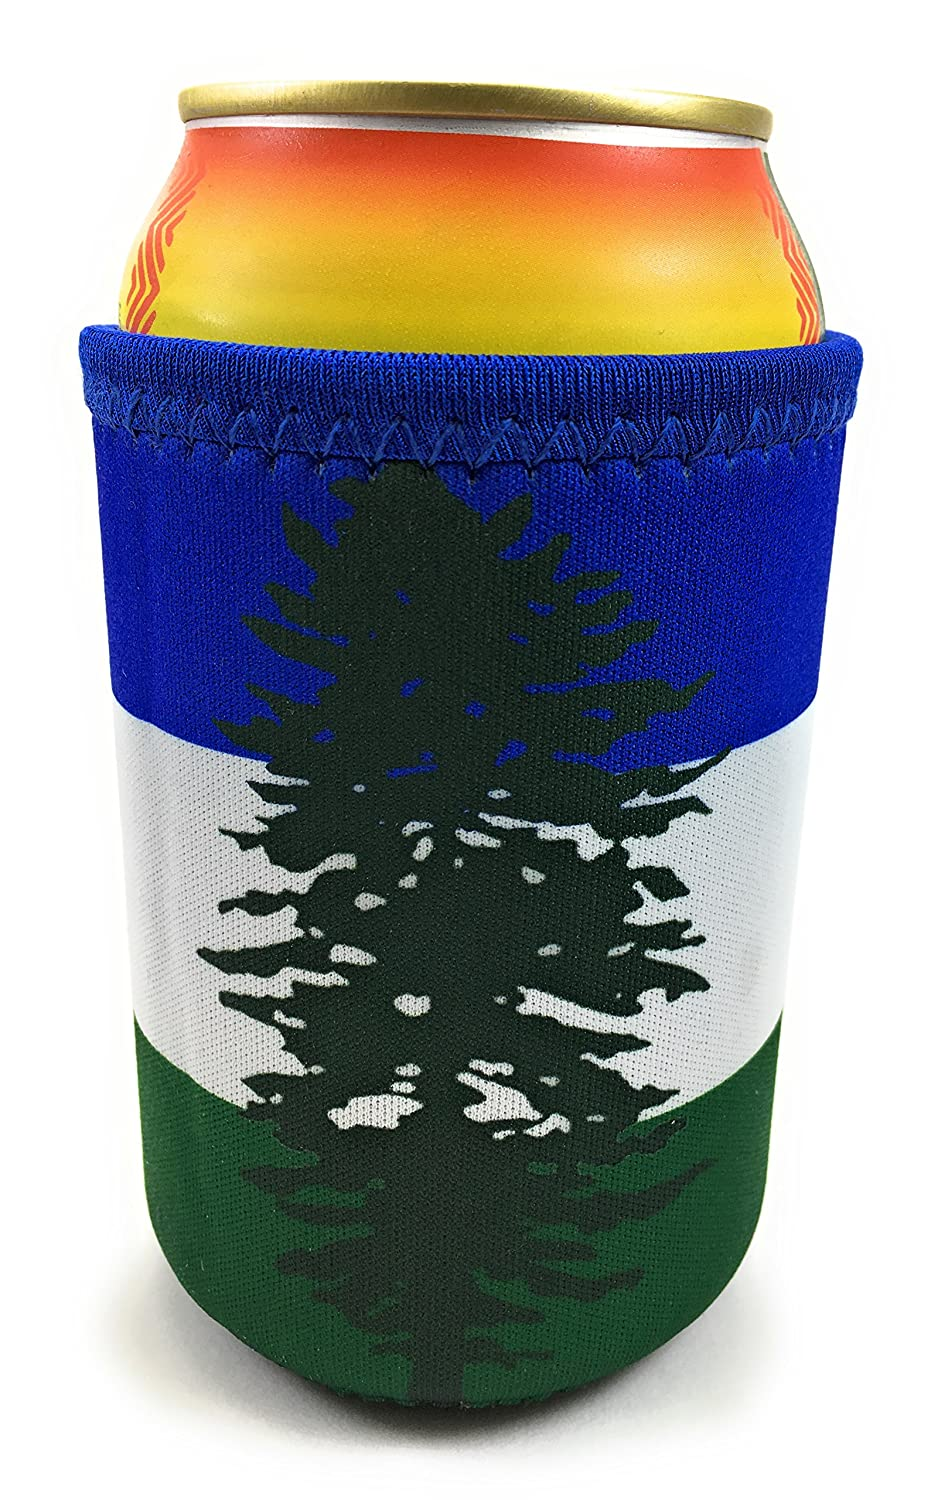 Cascadia Doug Neoprene Beverage Insulator Beer Can and Bottle Coolie - Great for PNW Soccer and Football Tailgating Sports Events - Green White & Blue Stripes with Fir Tree Flag SBF 50